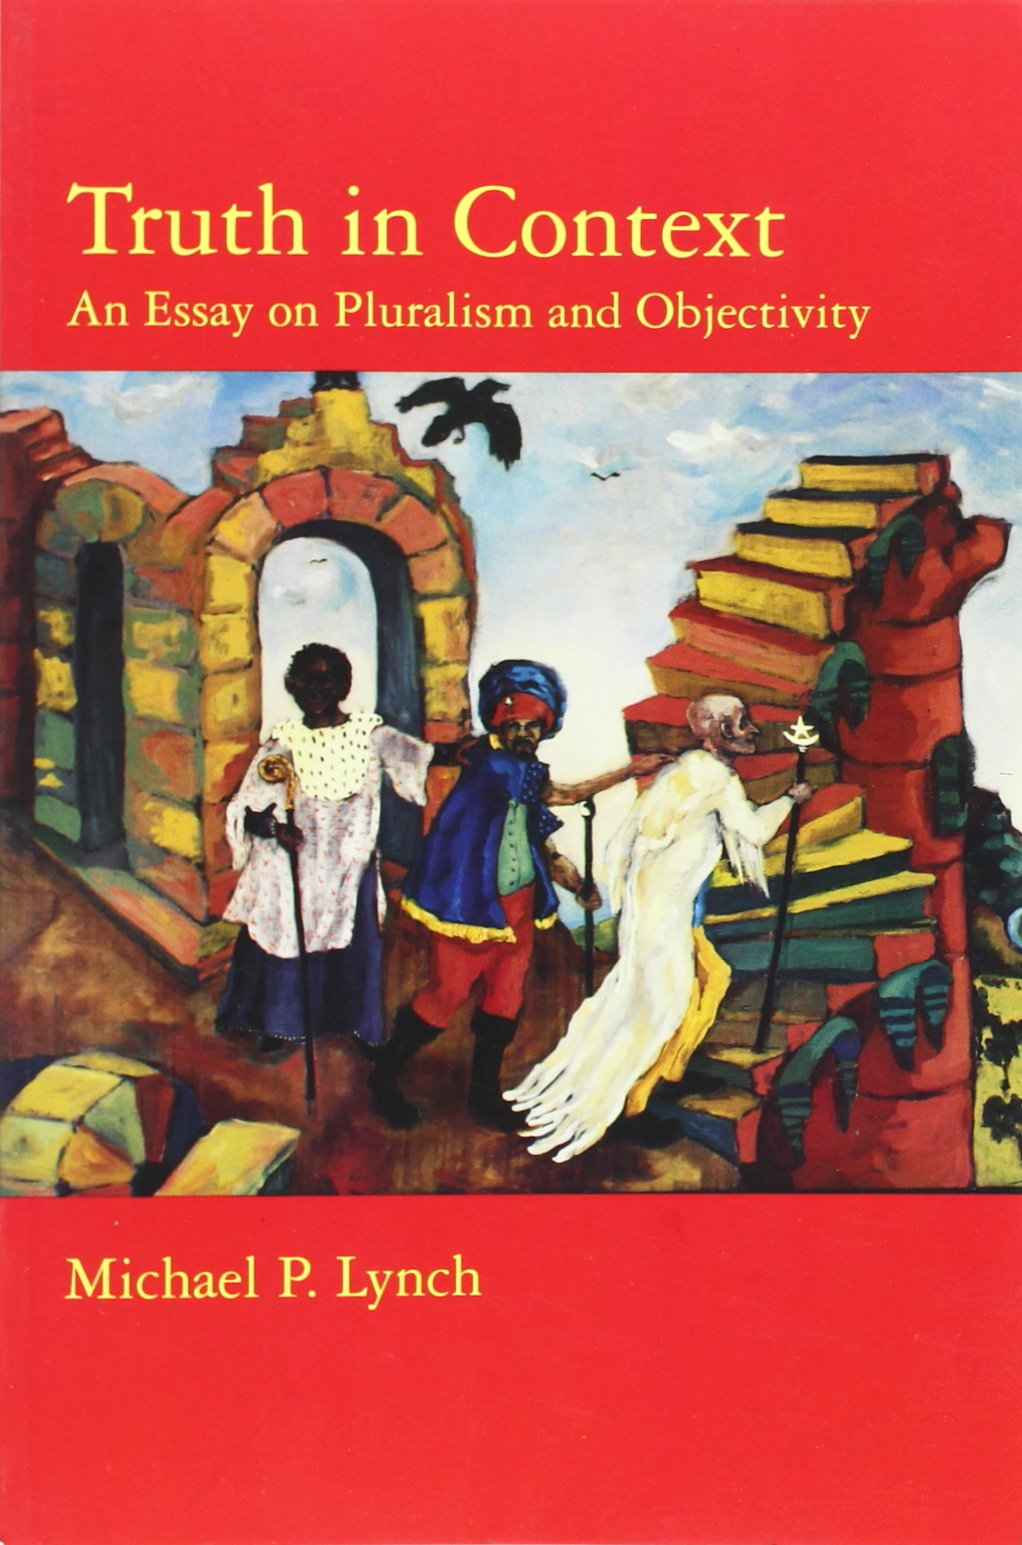 truth in context an essay on pluralism and objectivity michael p truth in context an essay on pluralism and objectivity michael p lynch 9780262621557 com books